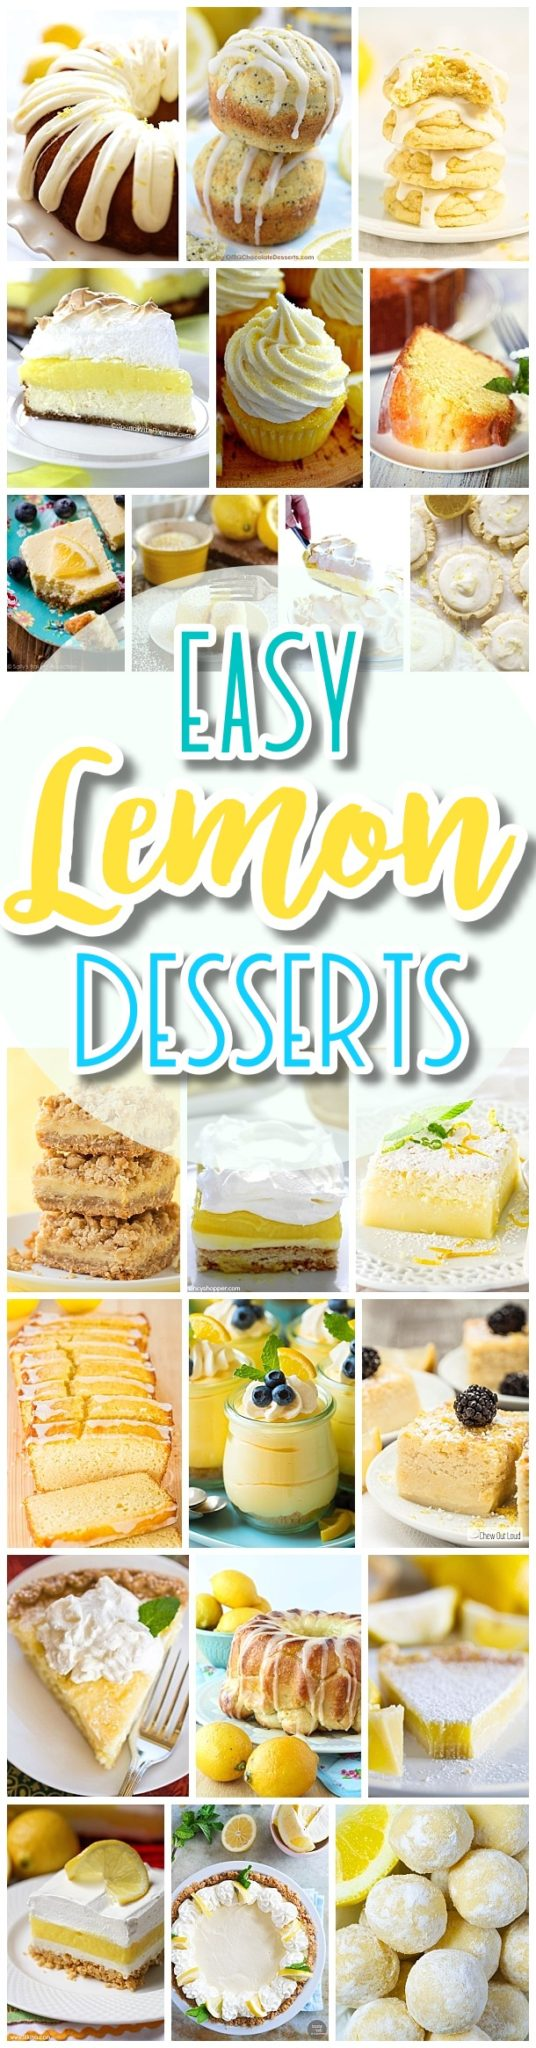 The BEST Easy Lemon Desserts and Treats Recipes - Perfect For Easter, Mother's Day Brunch, Bridal or Baby Showers and Pretty Spring and Summer Holiday Party Refreshments - Dreaming in DIY